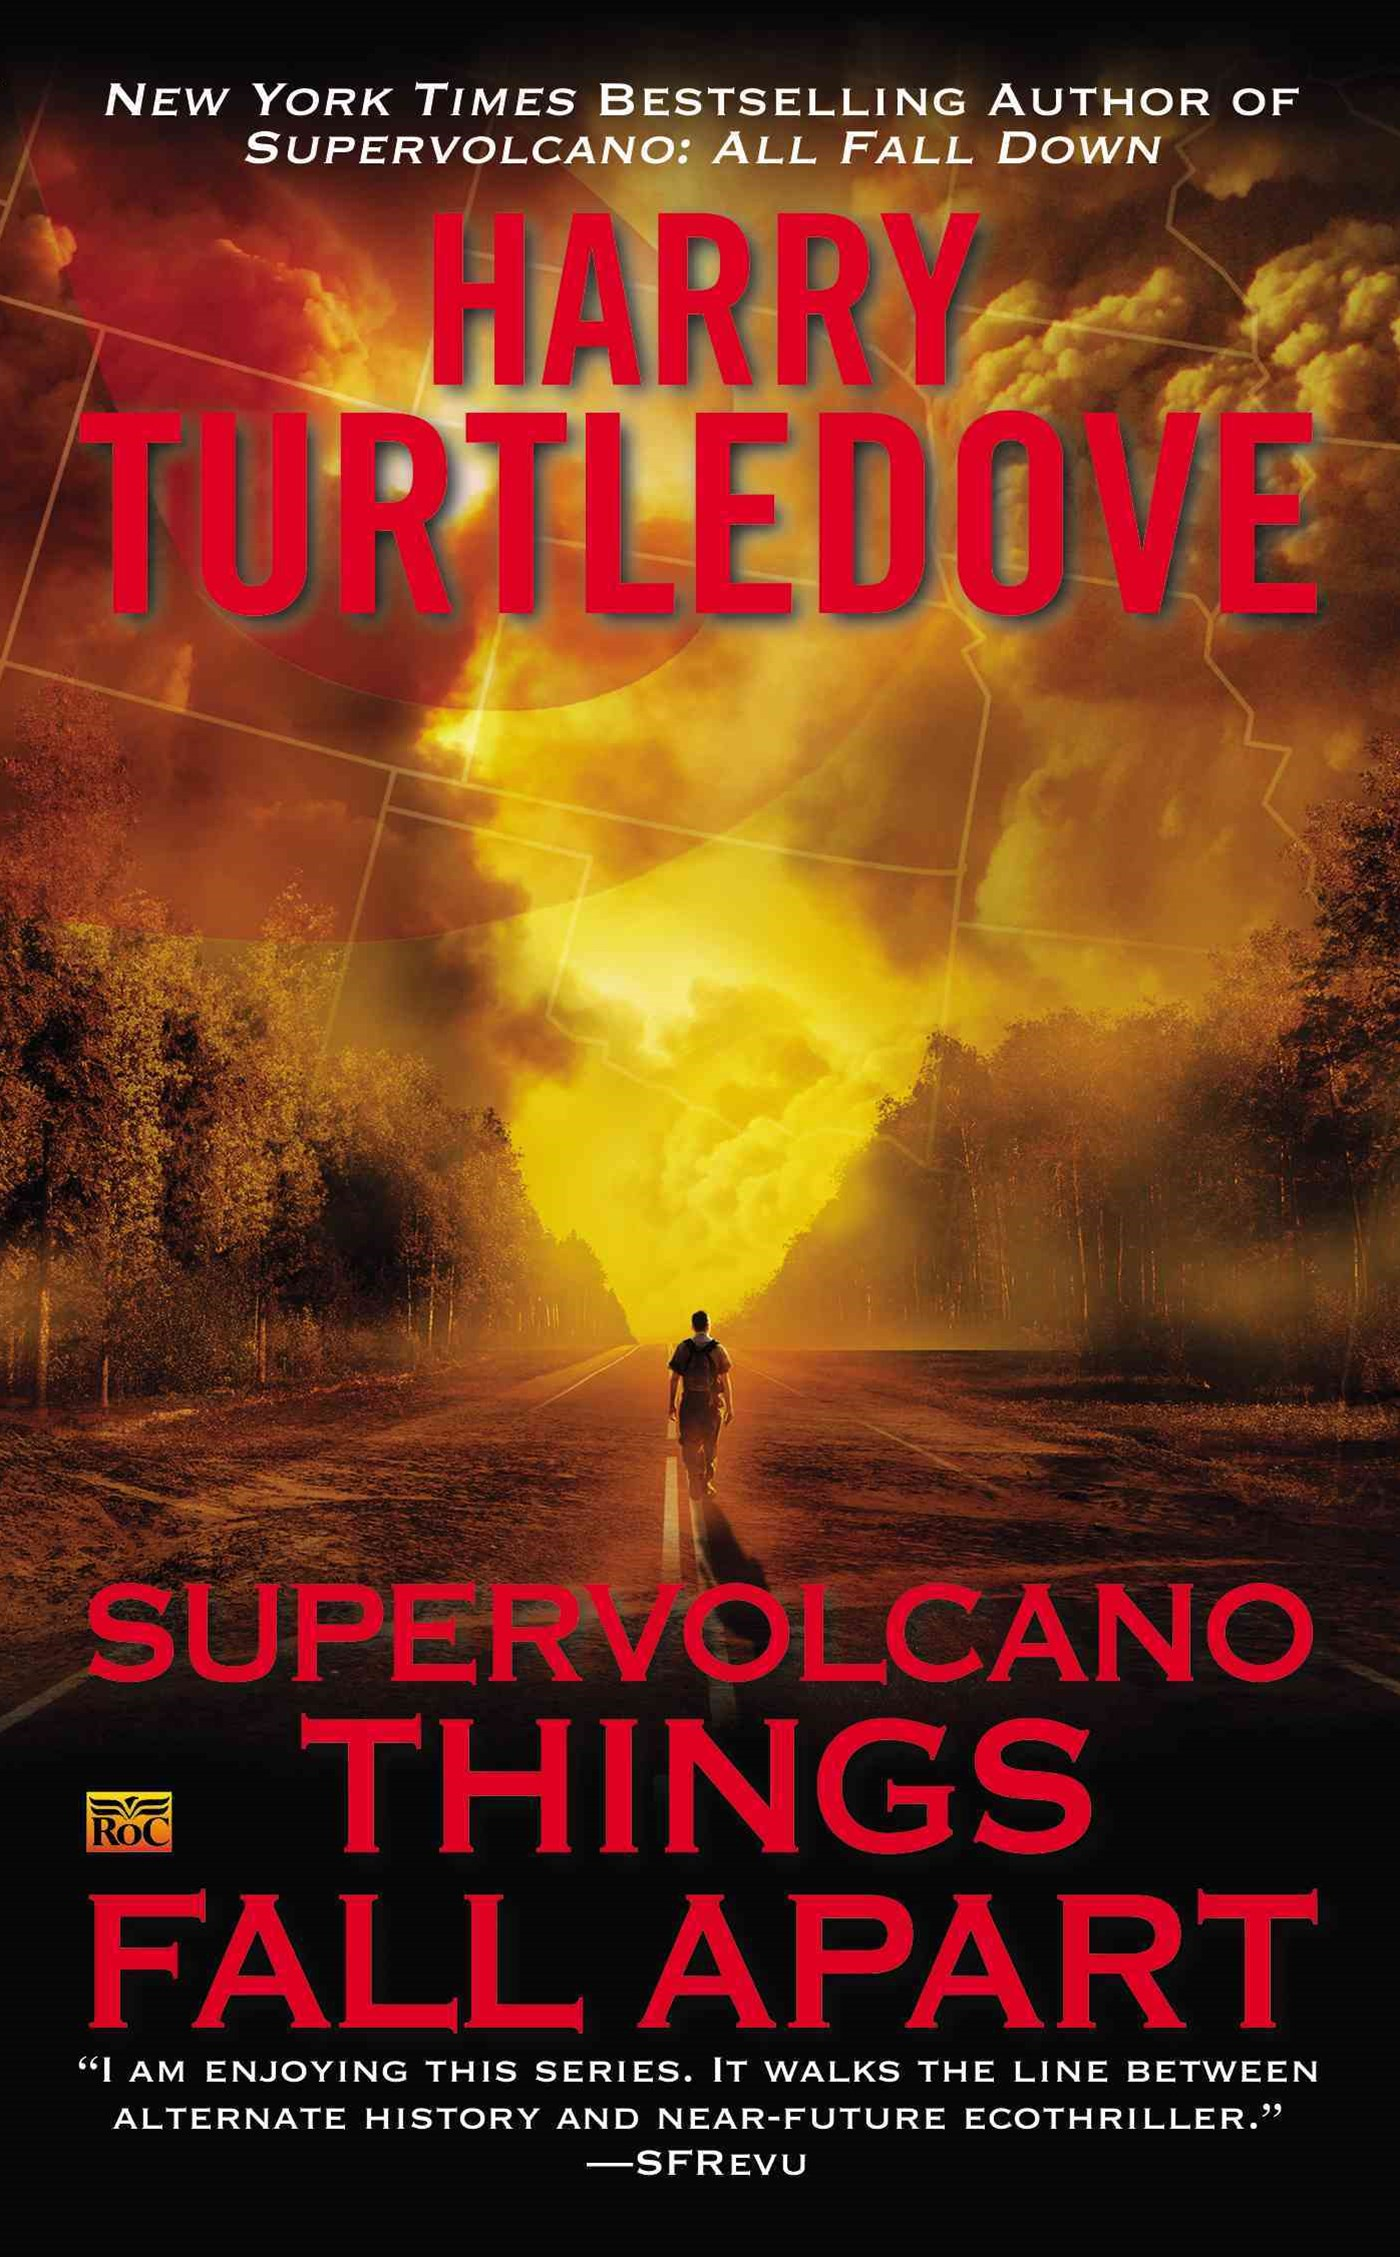 Supervolcano - Things Fall Apart